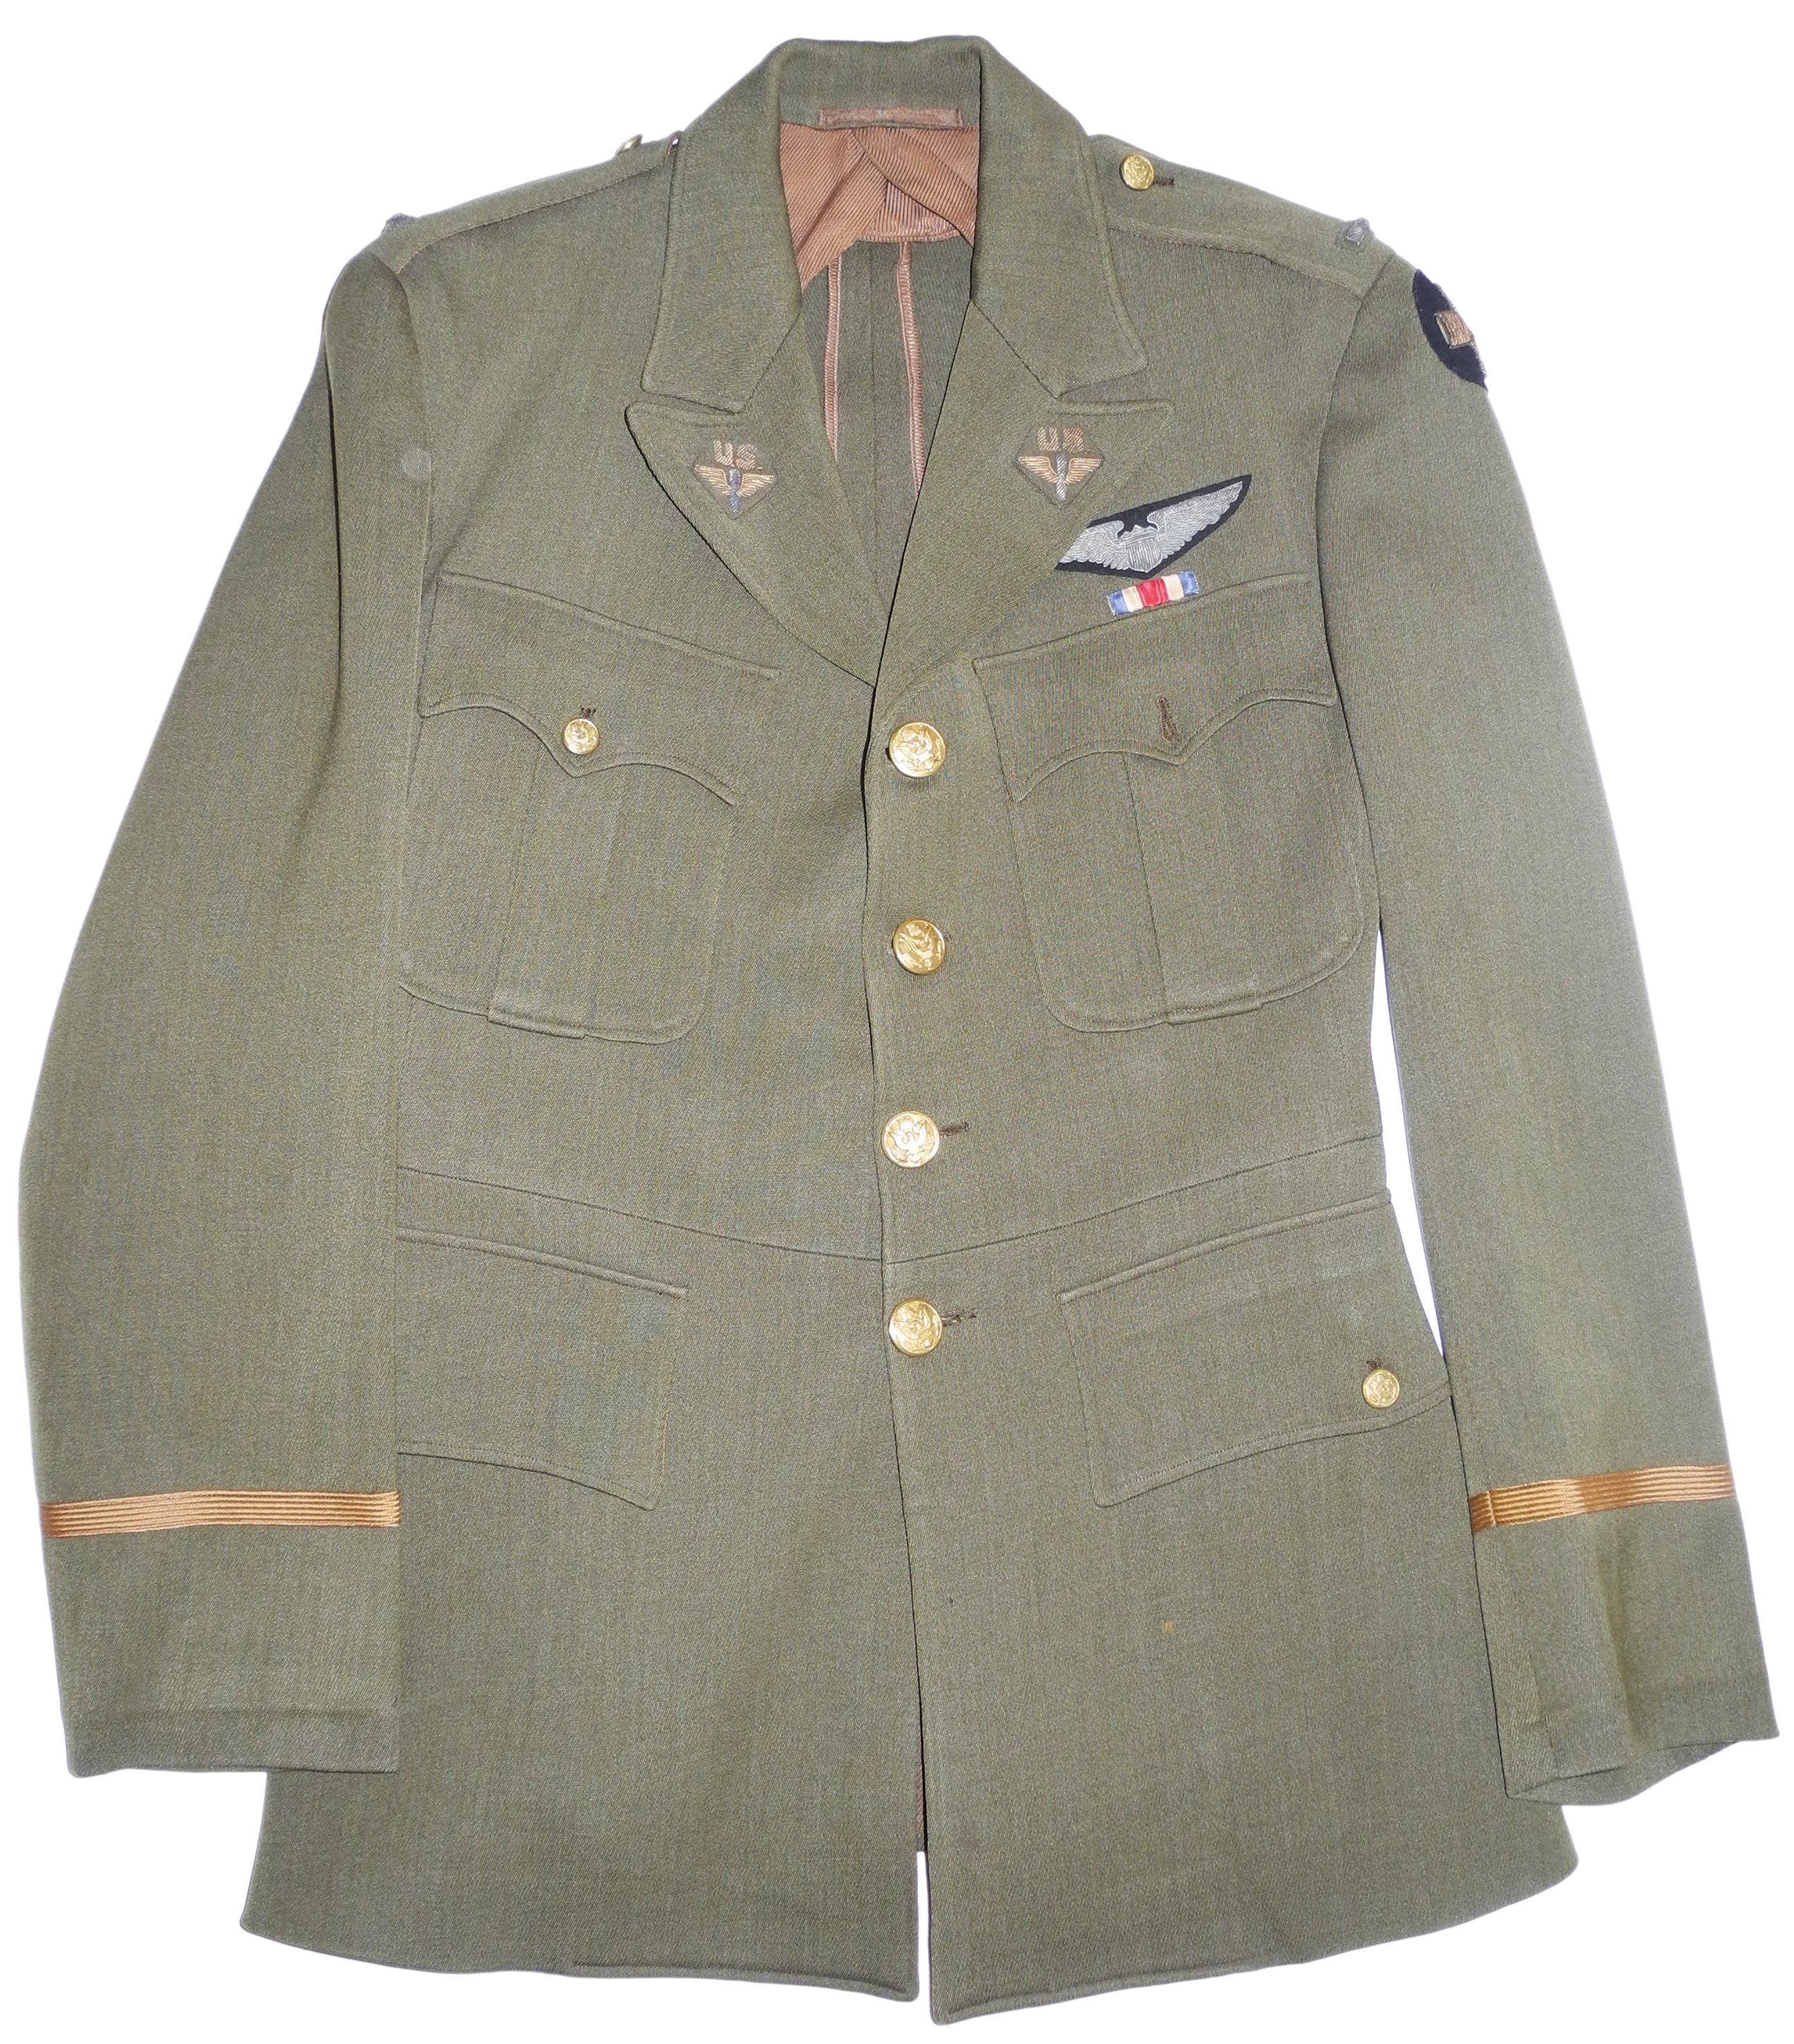 Army Air Corps 1930s tunic with ID